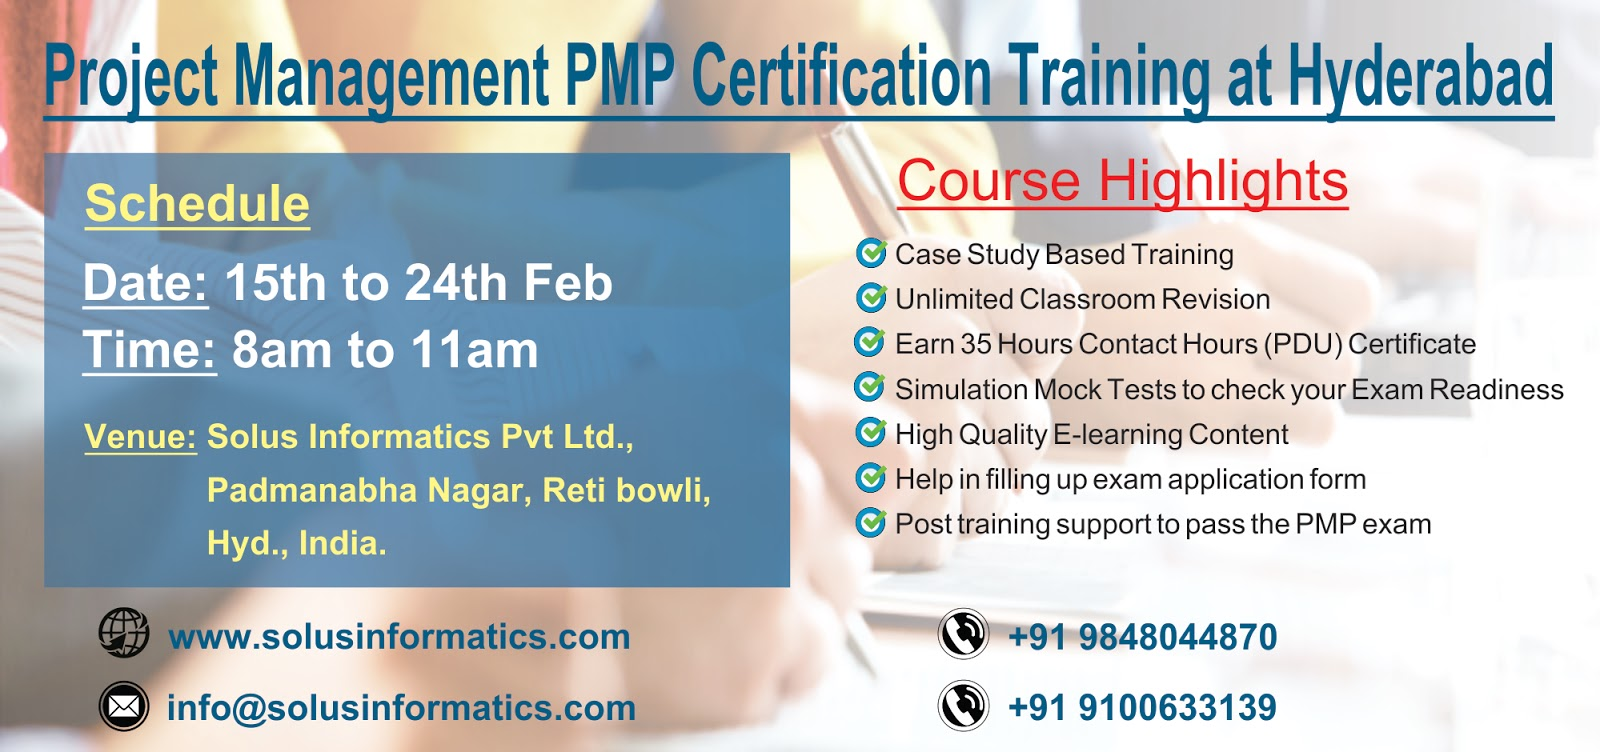 pmp project management How to become a certified project management professional this article explains the process to become a certified project management professional though certification is not necessary to hold most management positions, it can lend.